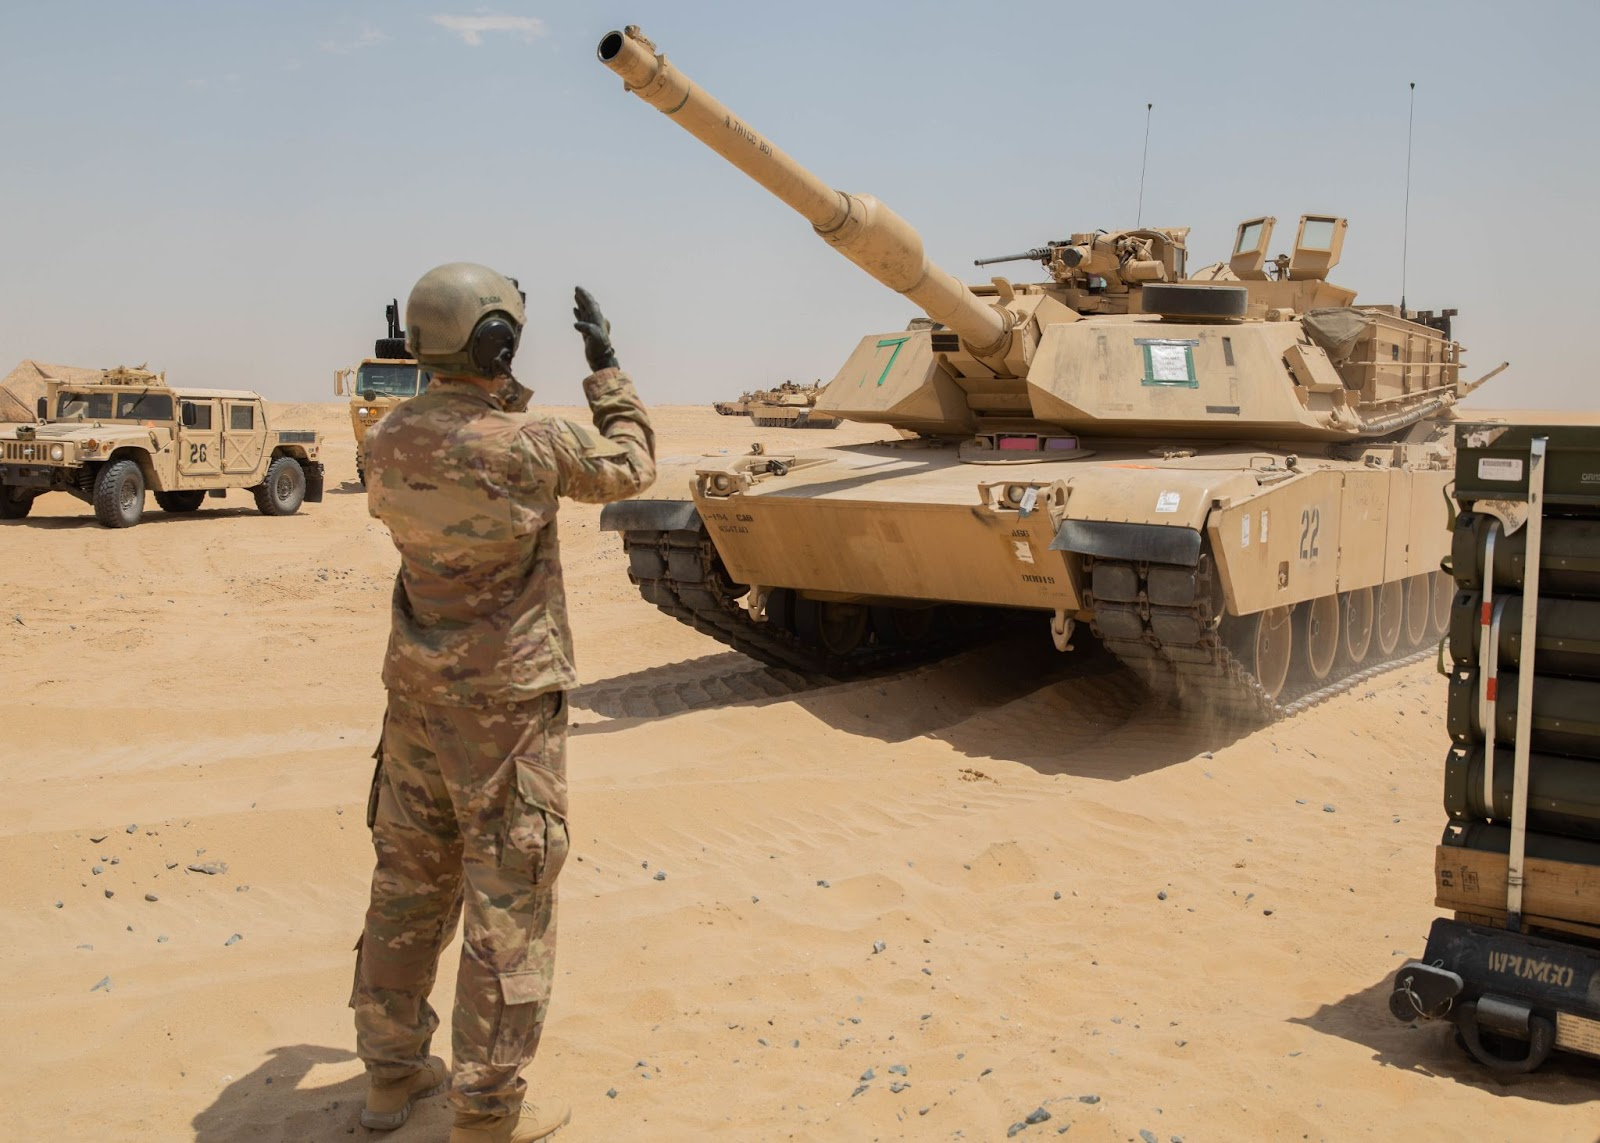 We salute the Army crew who named their tank 'A Thicc Boi'